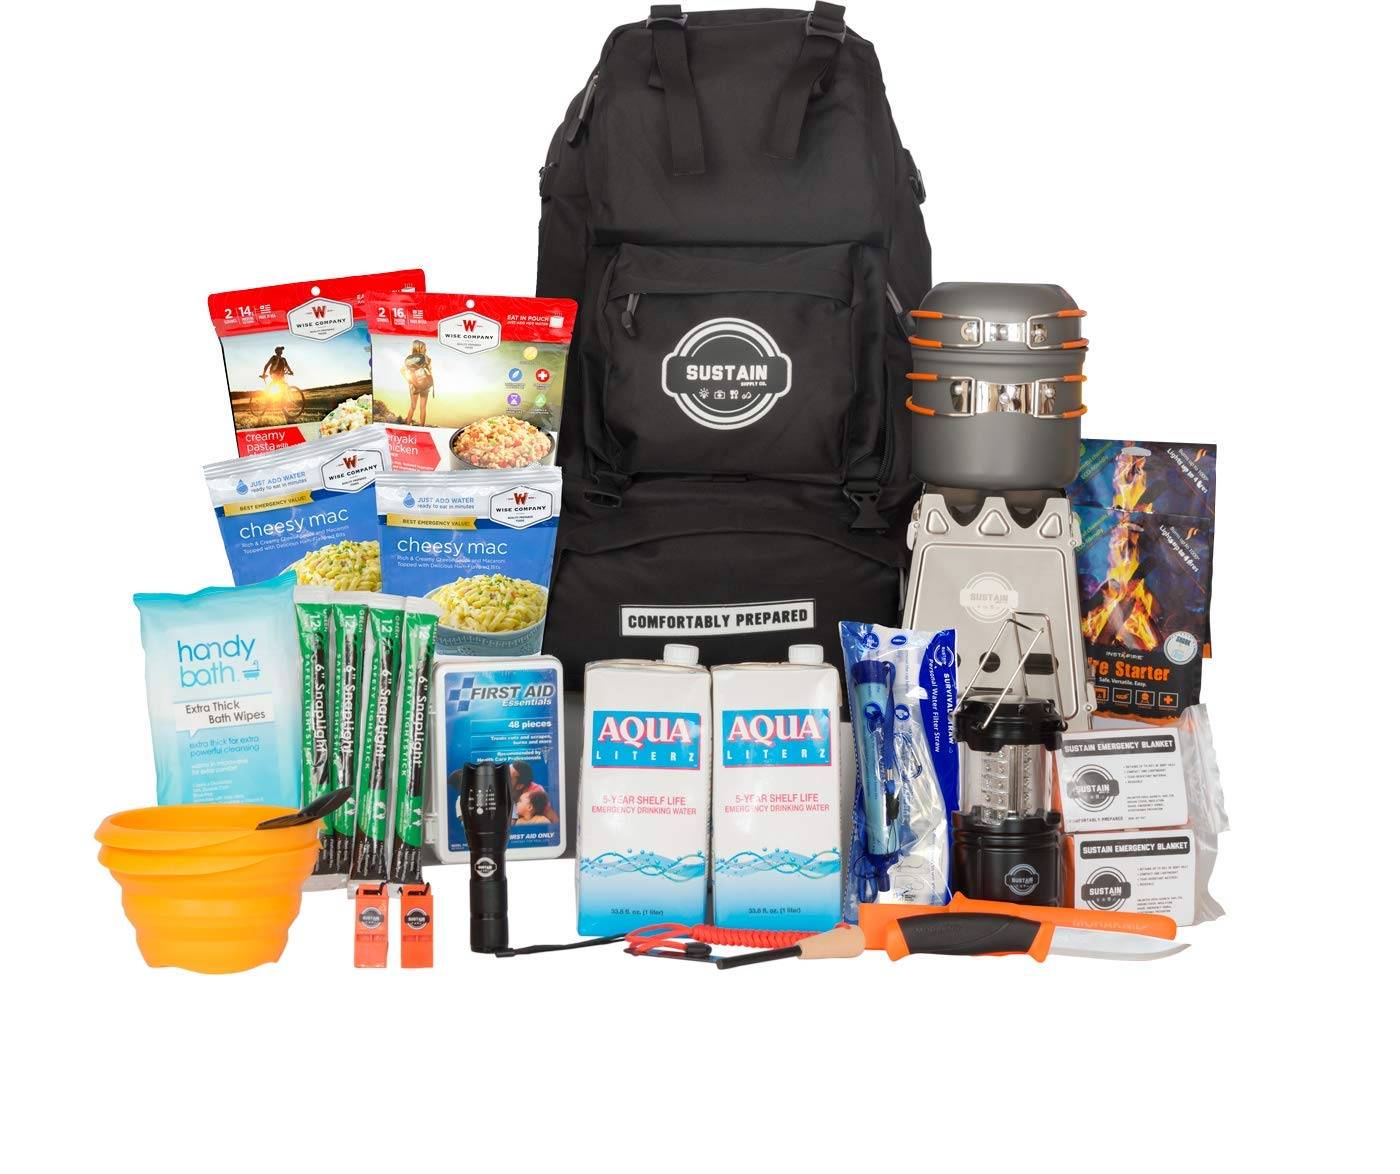 gifts-for-dad-survival pack